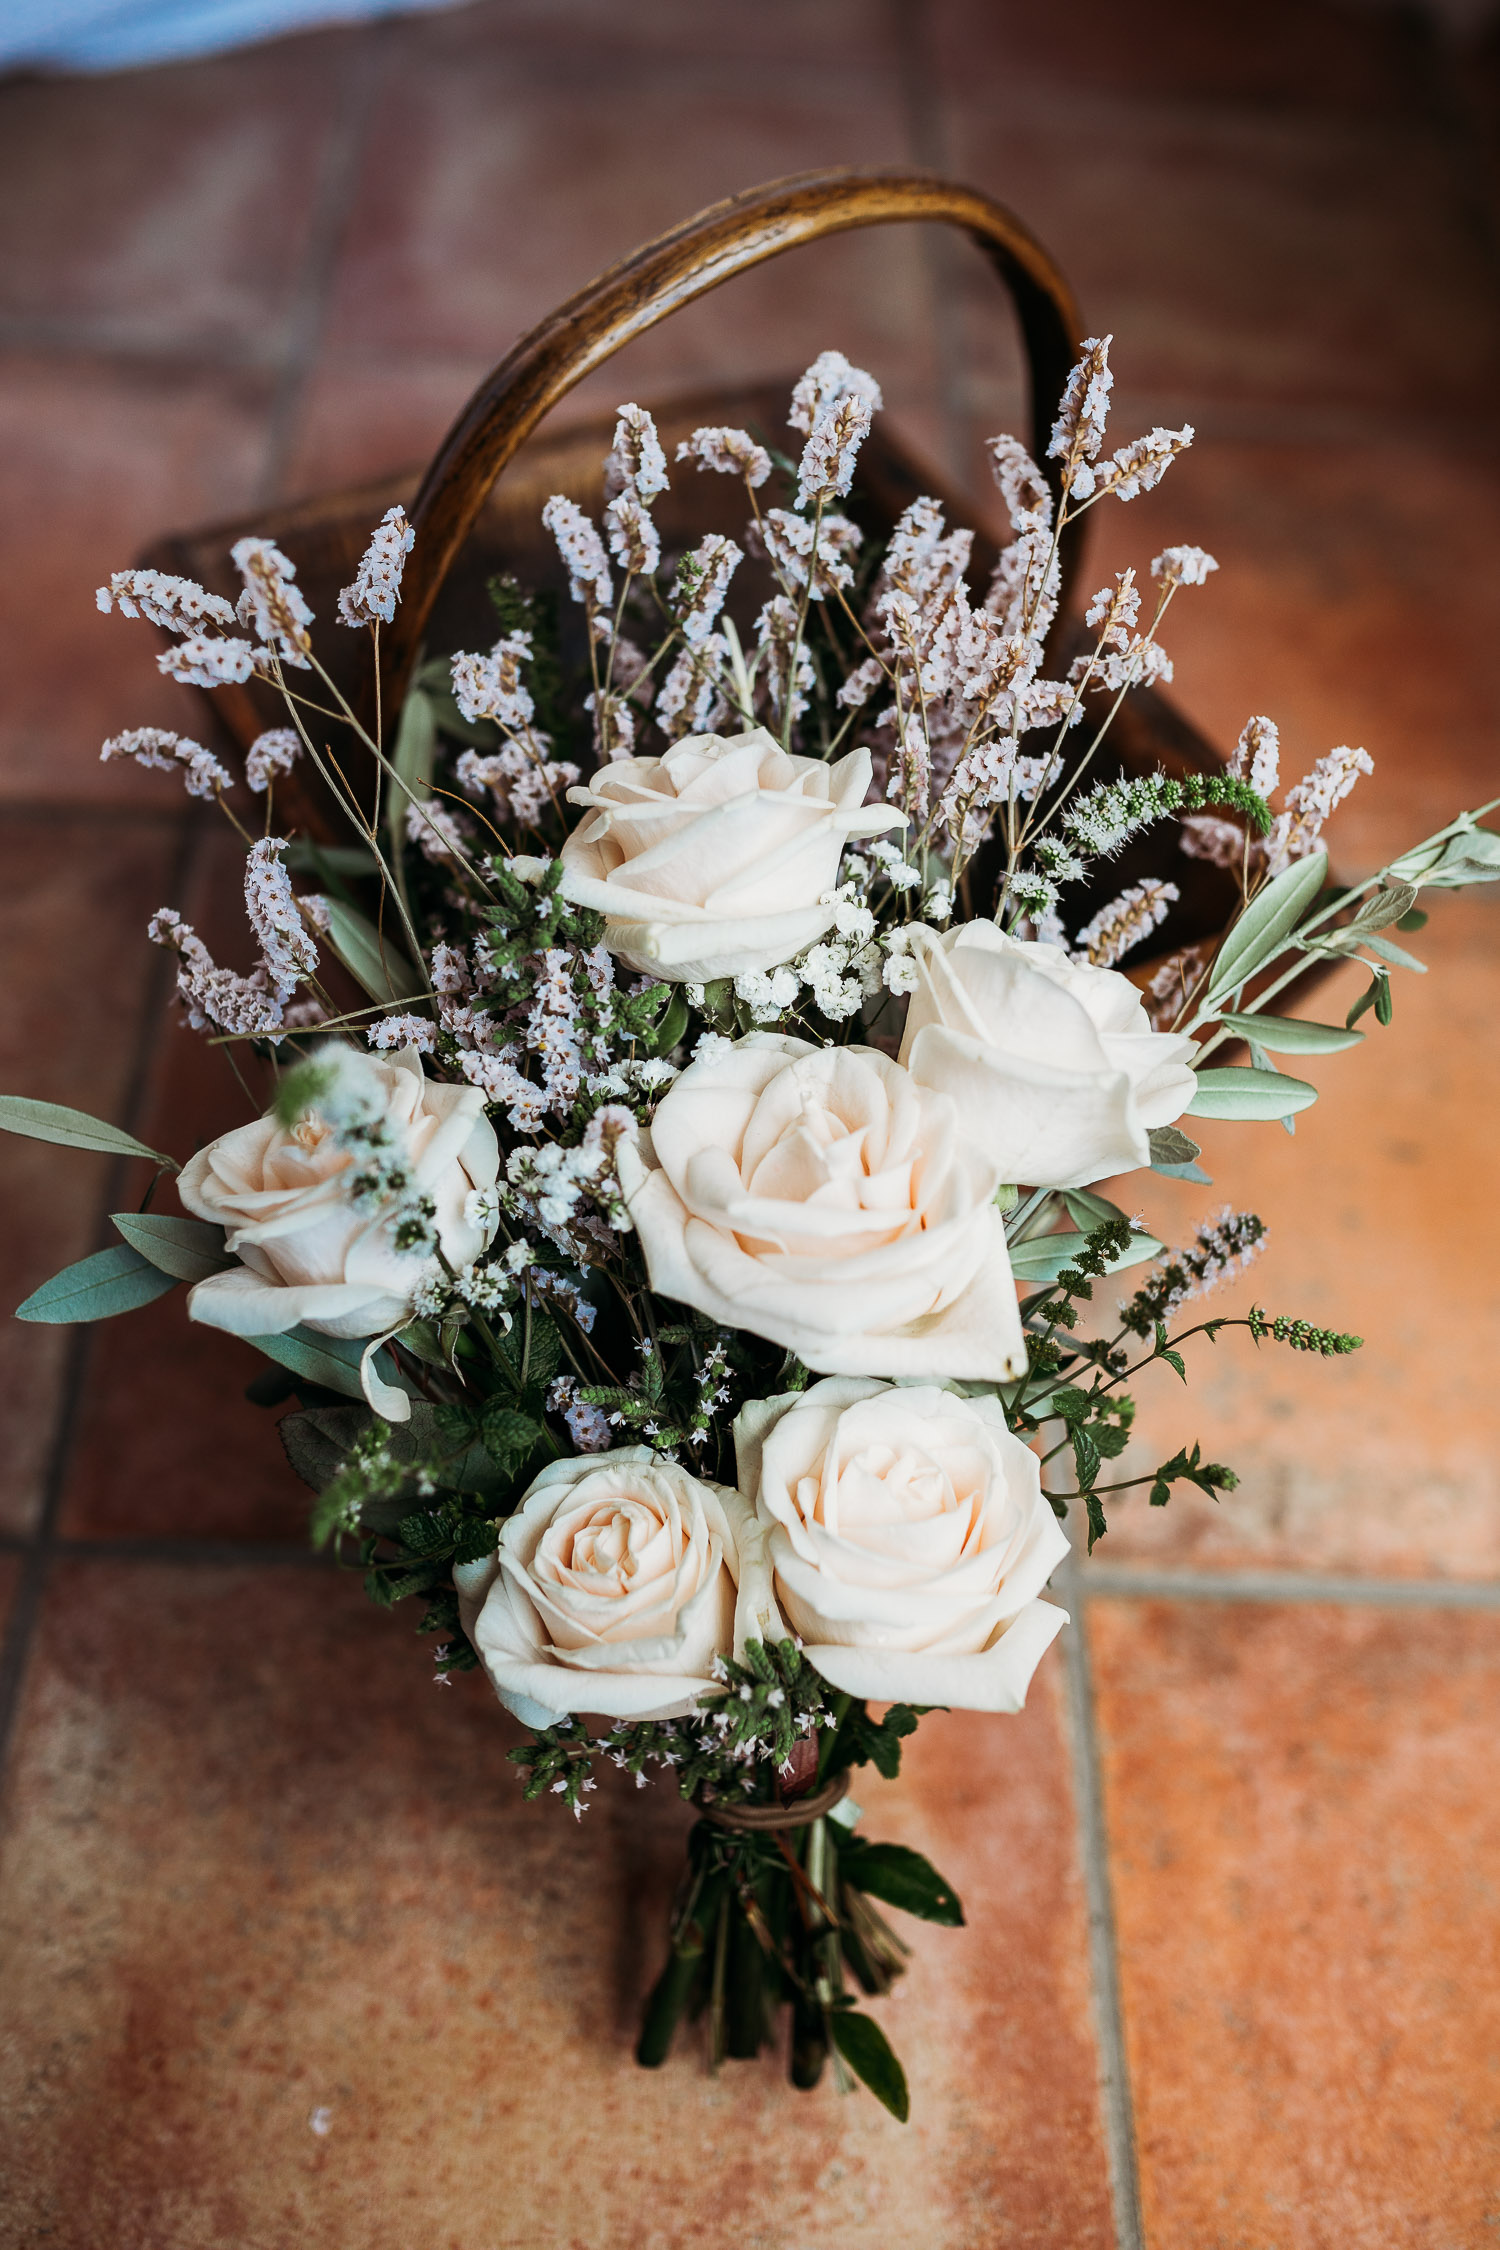 Simple small bouquet with white roses and little flowers